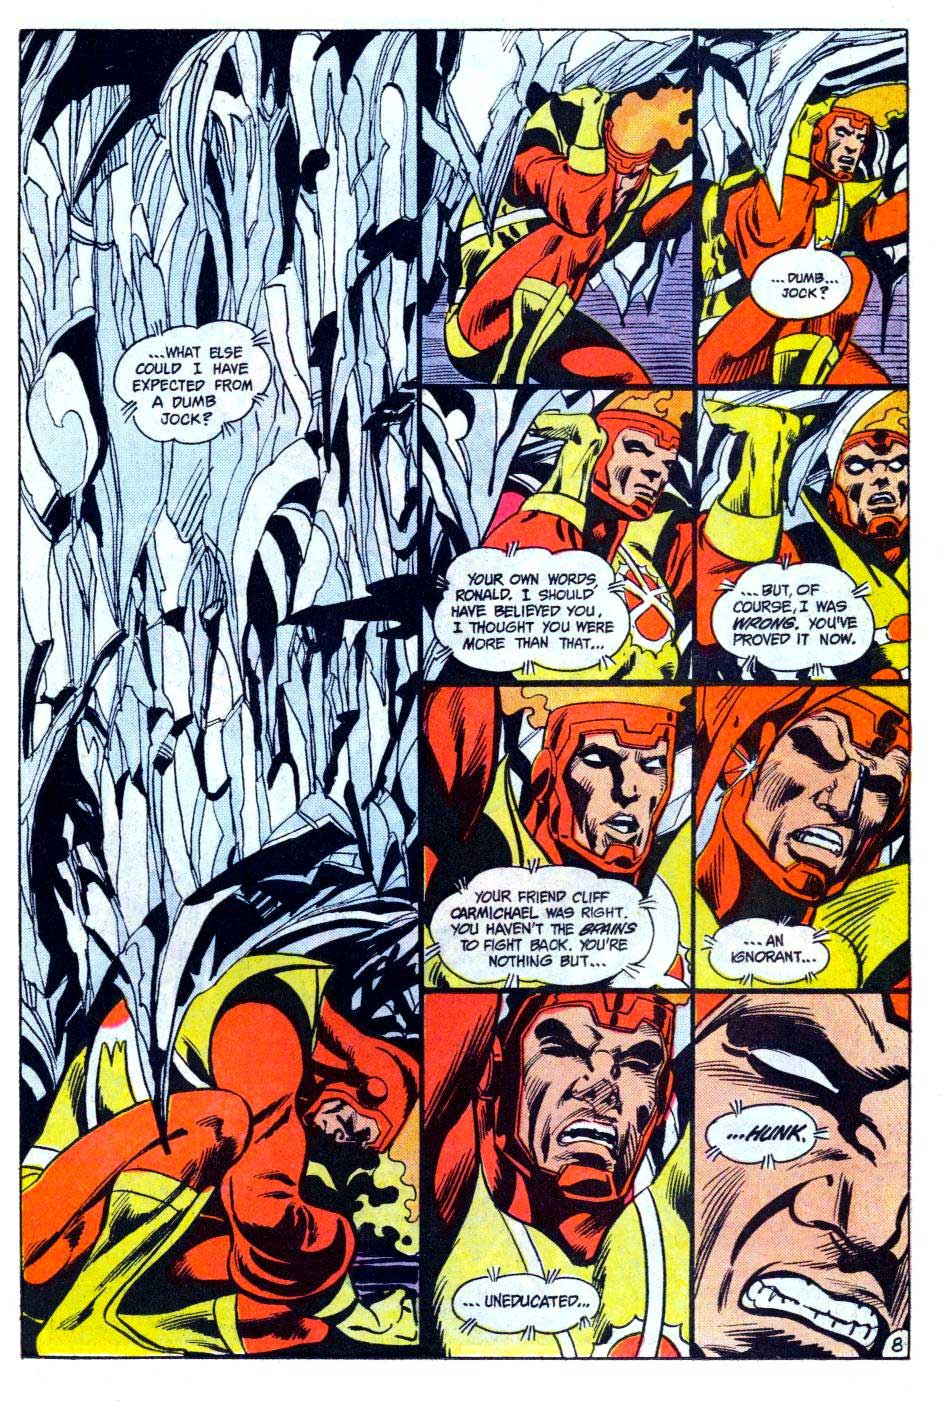 Fury of Firestorm #35 by Gerry Conway, Rafael Kayanan, and Alan Kupperberg